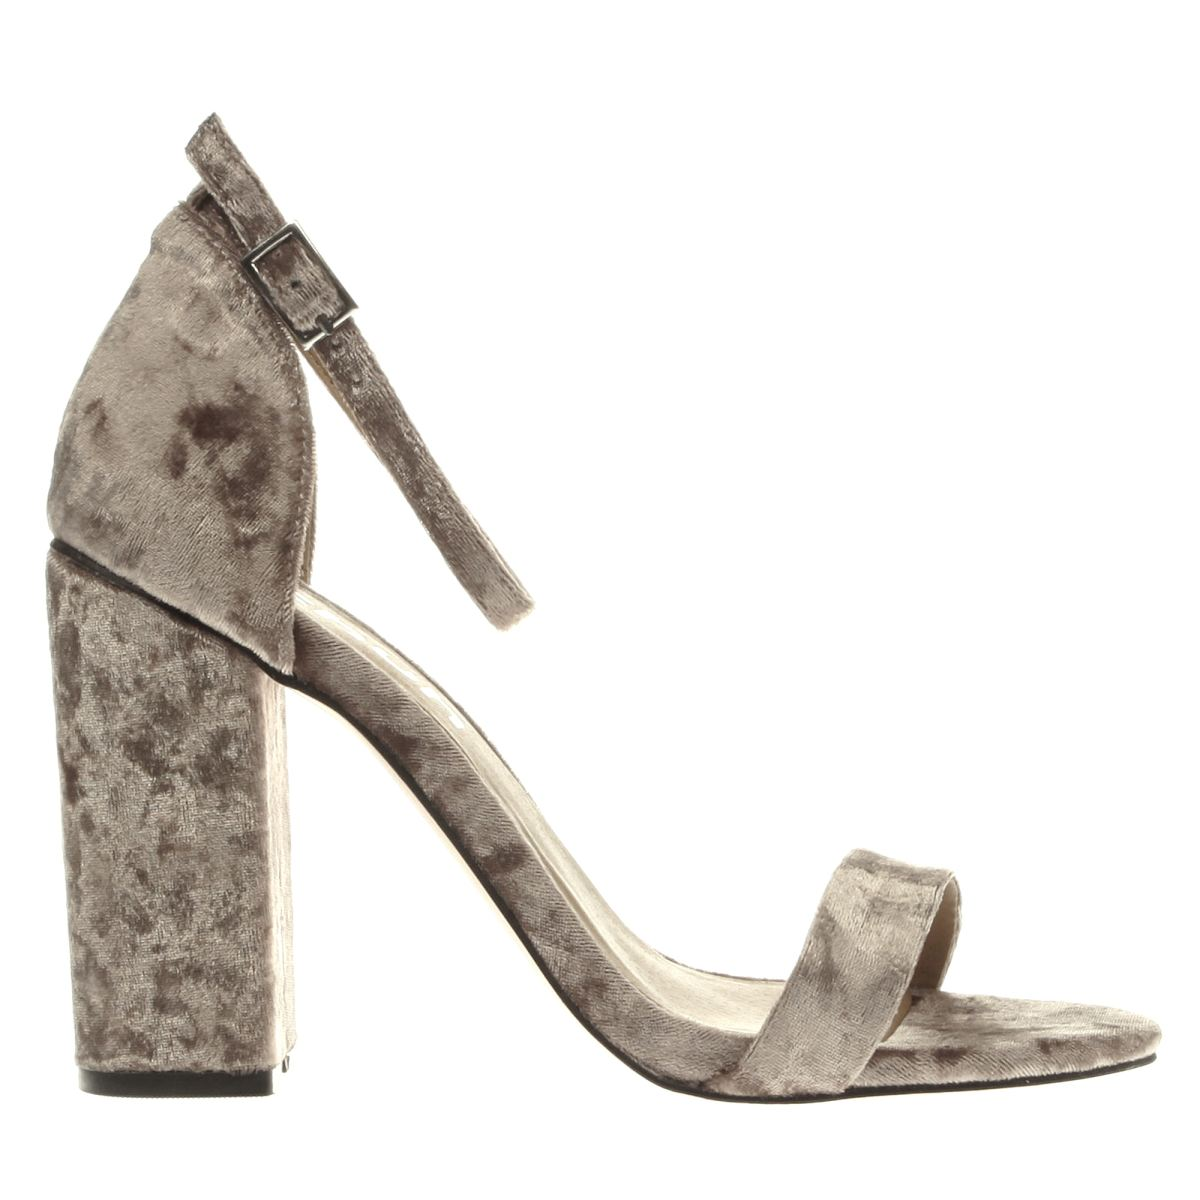 Photo of Schuh stone encounter high heels